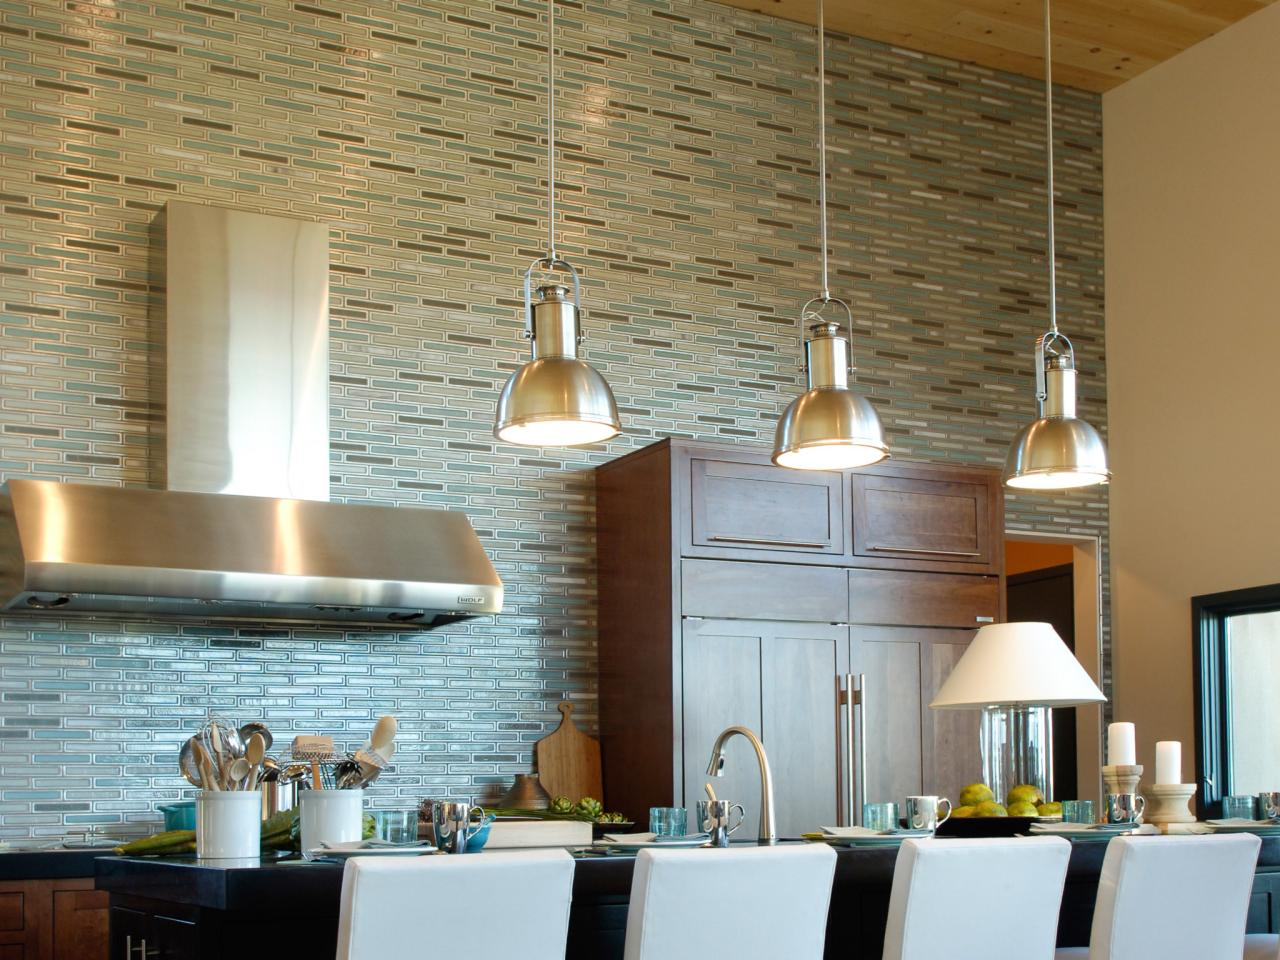 Blacksplash Ideas tile backsplash ideas: pictures & tips from hgtv | hgtv